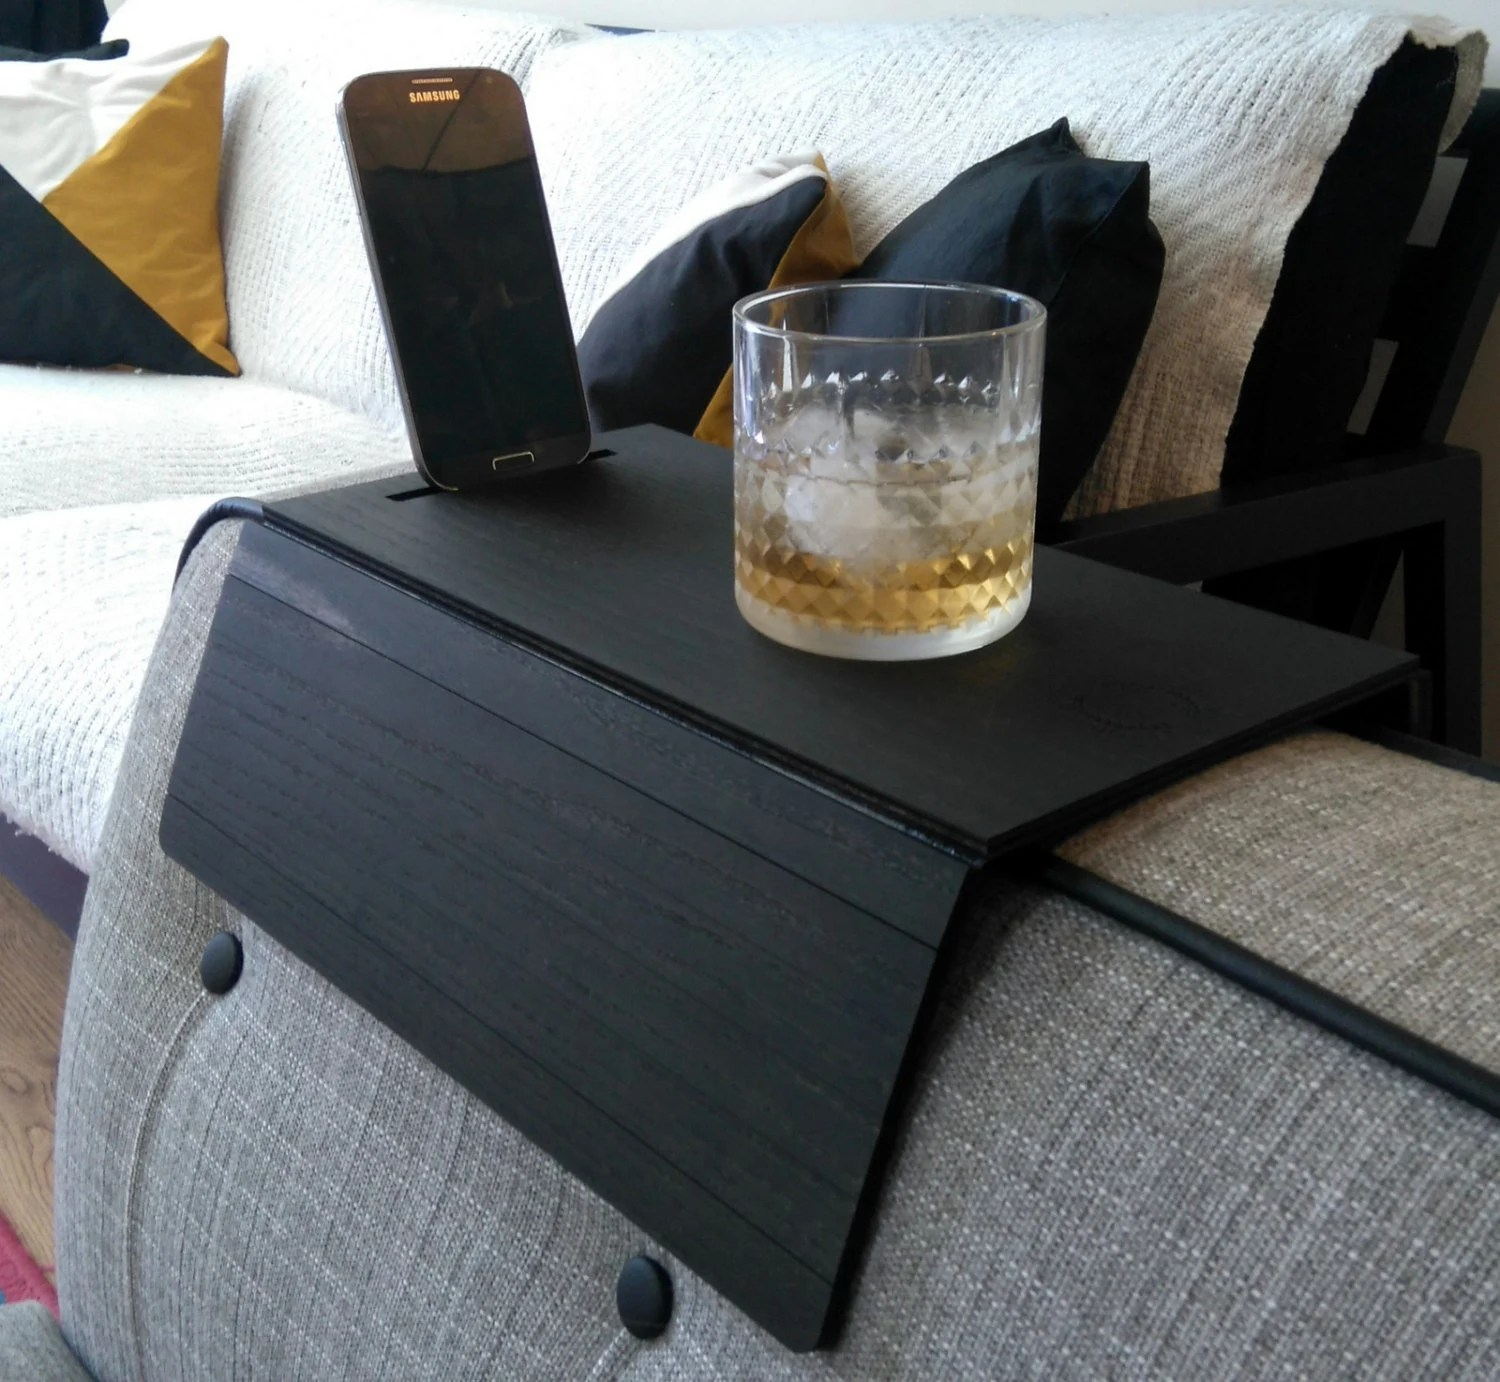 sofa armrest drink holder coaster contemporary styled futon sleeper cream arm tray placemat table